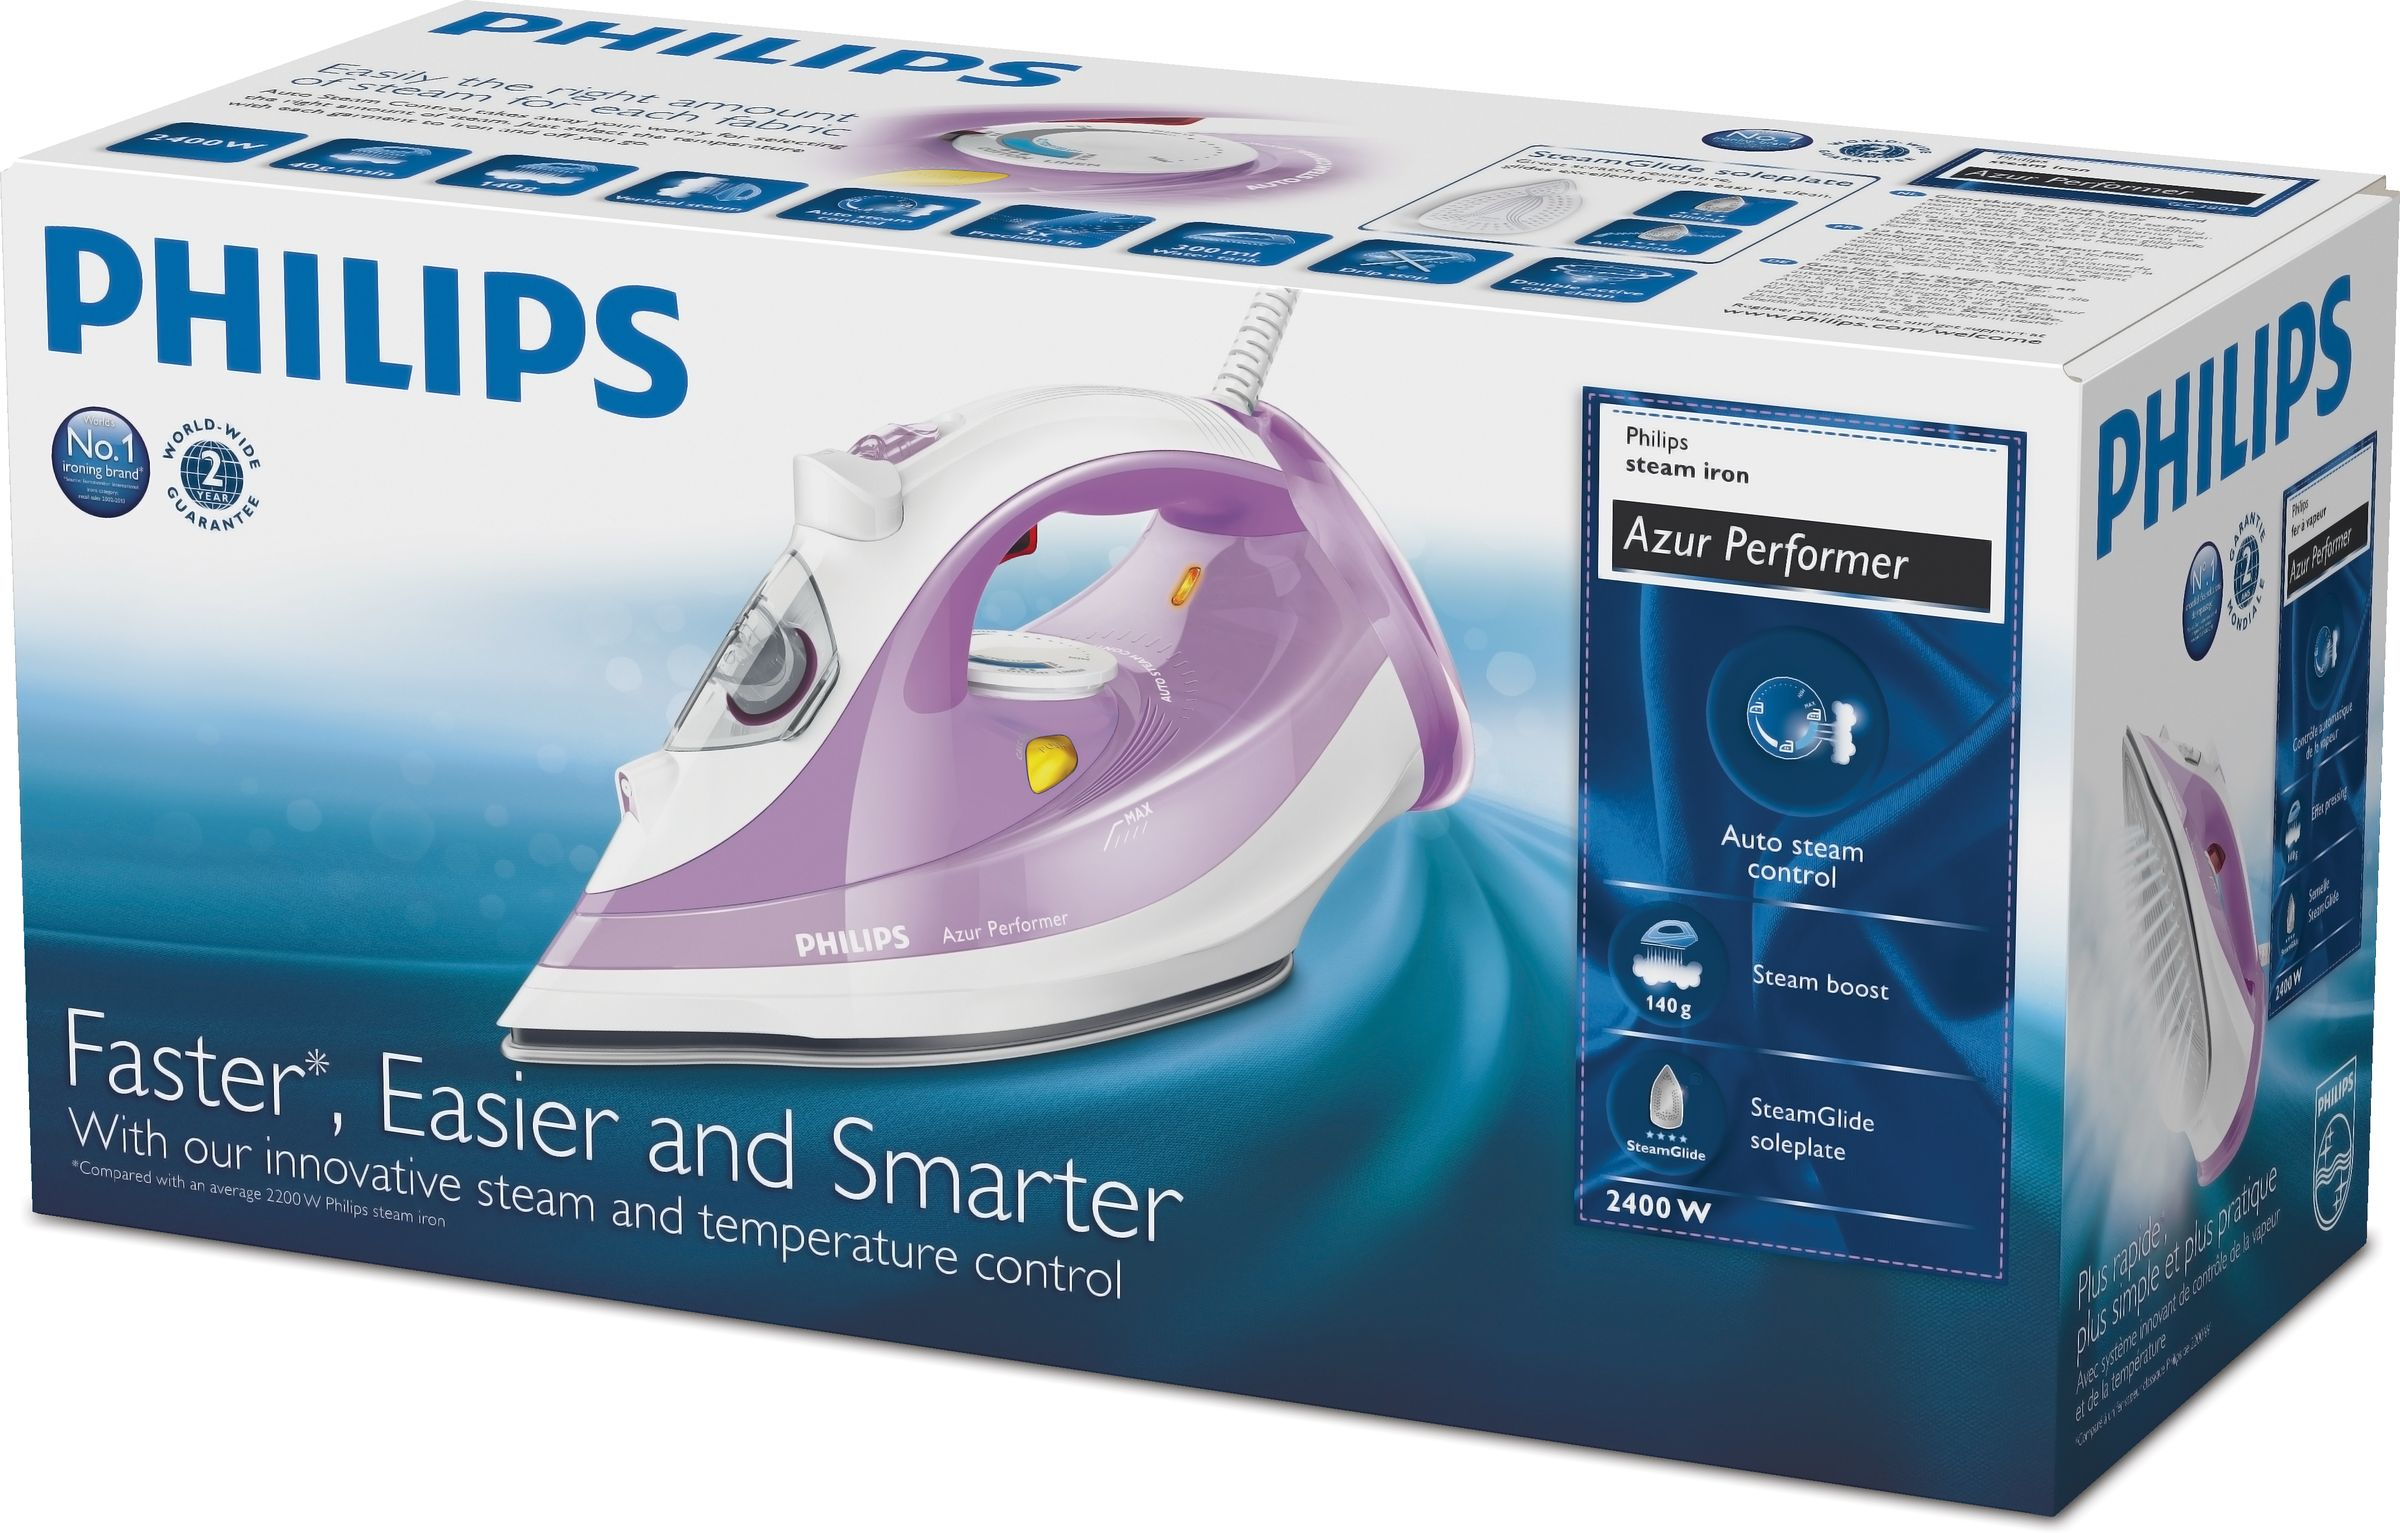 Philips Azur Performer Steam iron